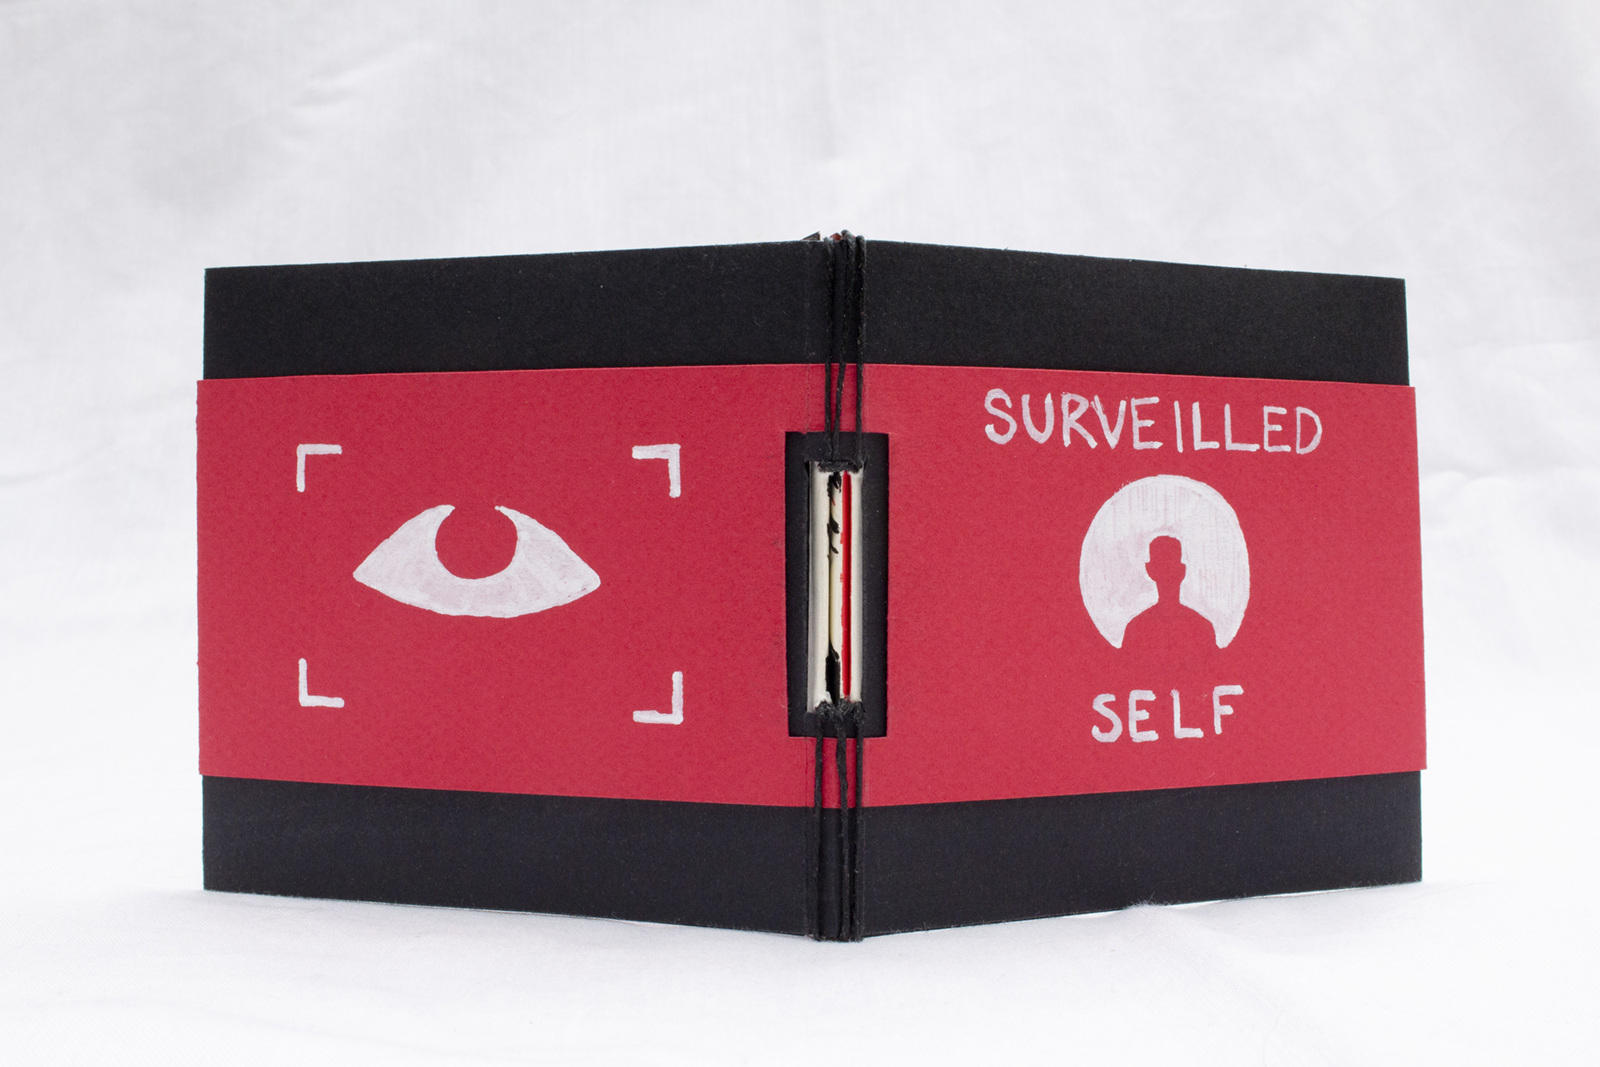 Entire cover of Surveilled Self. The buttonhole exposed spine binding is visible. Binding is black thread over paper cover.